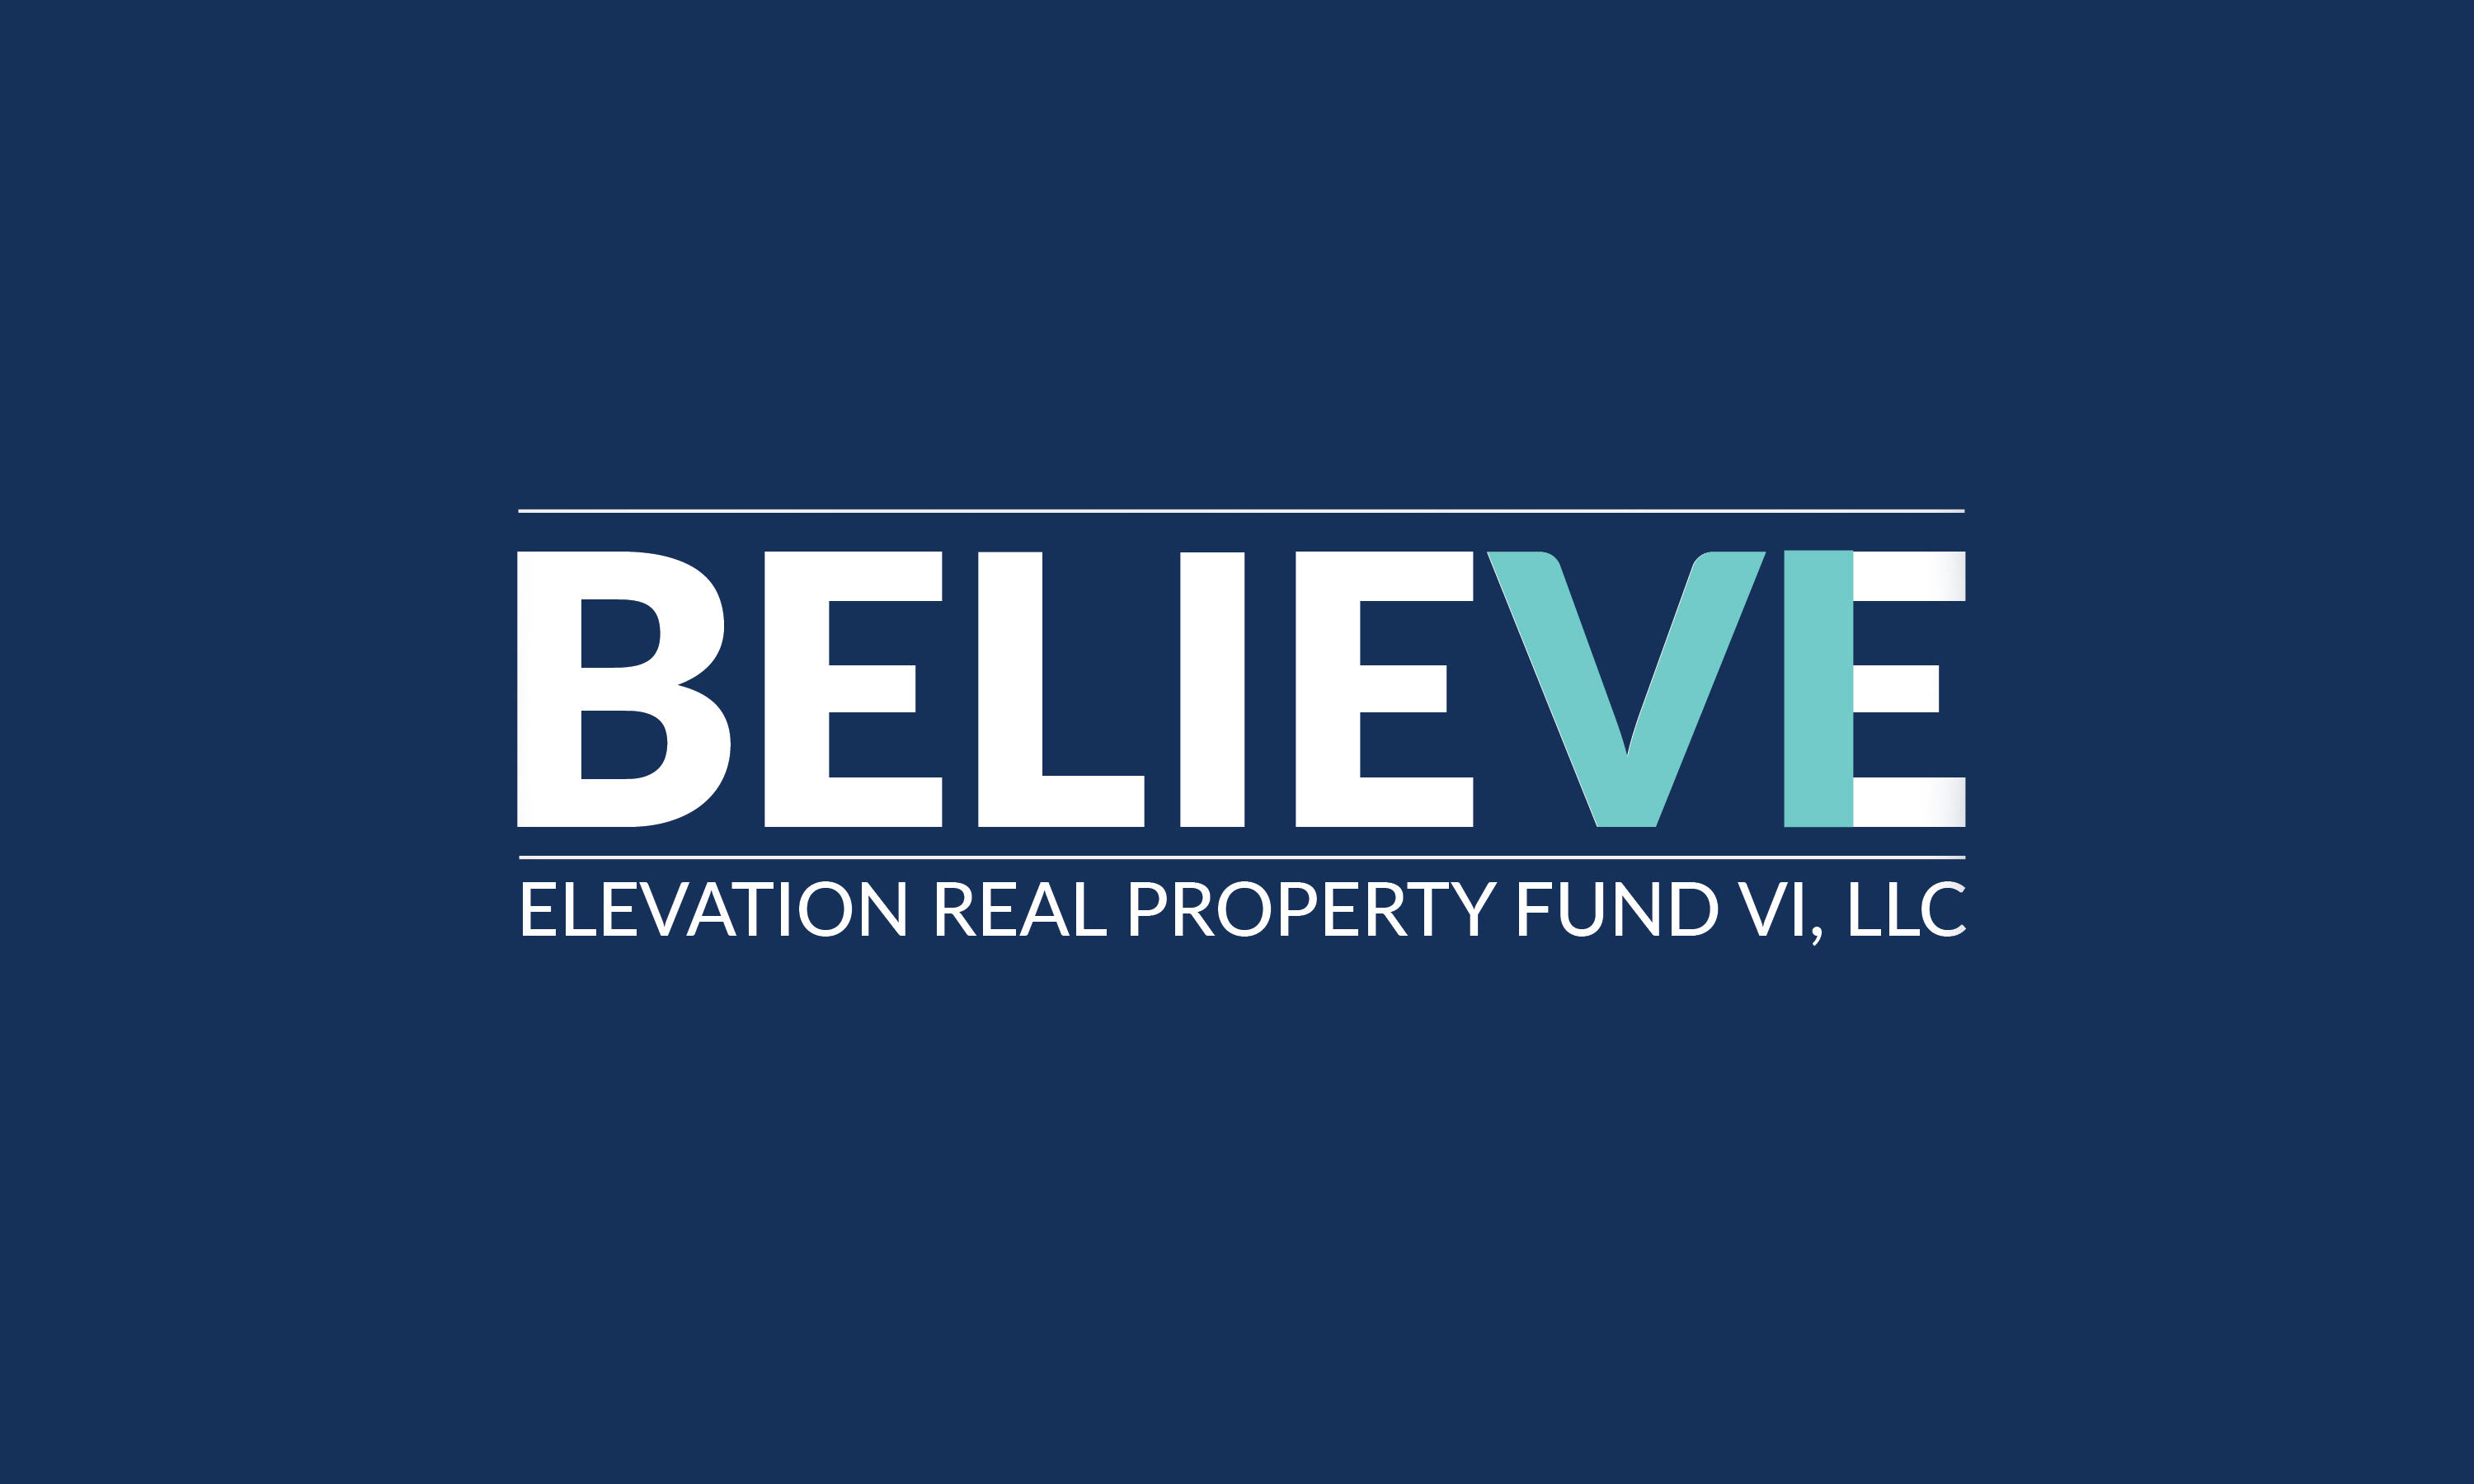 elevation financial group raises largest fund to date elevation elevation financial group raises largest fund to date elevation financial group